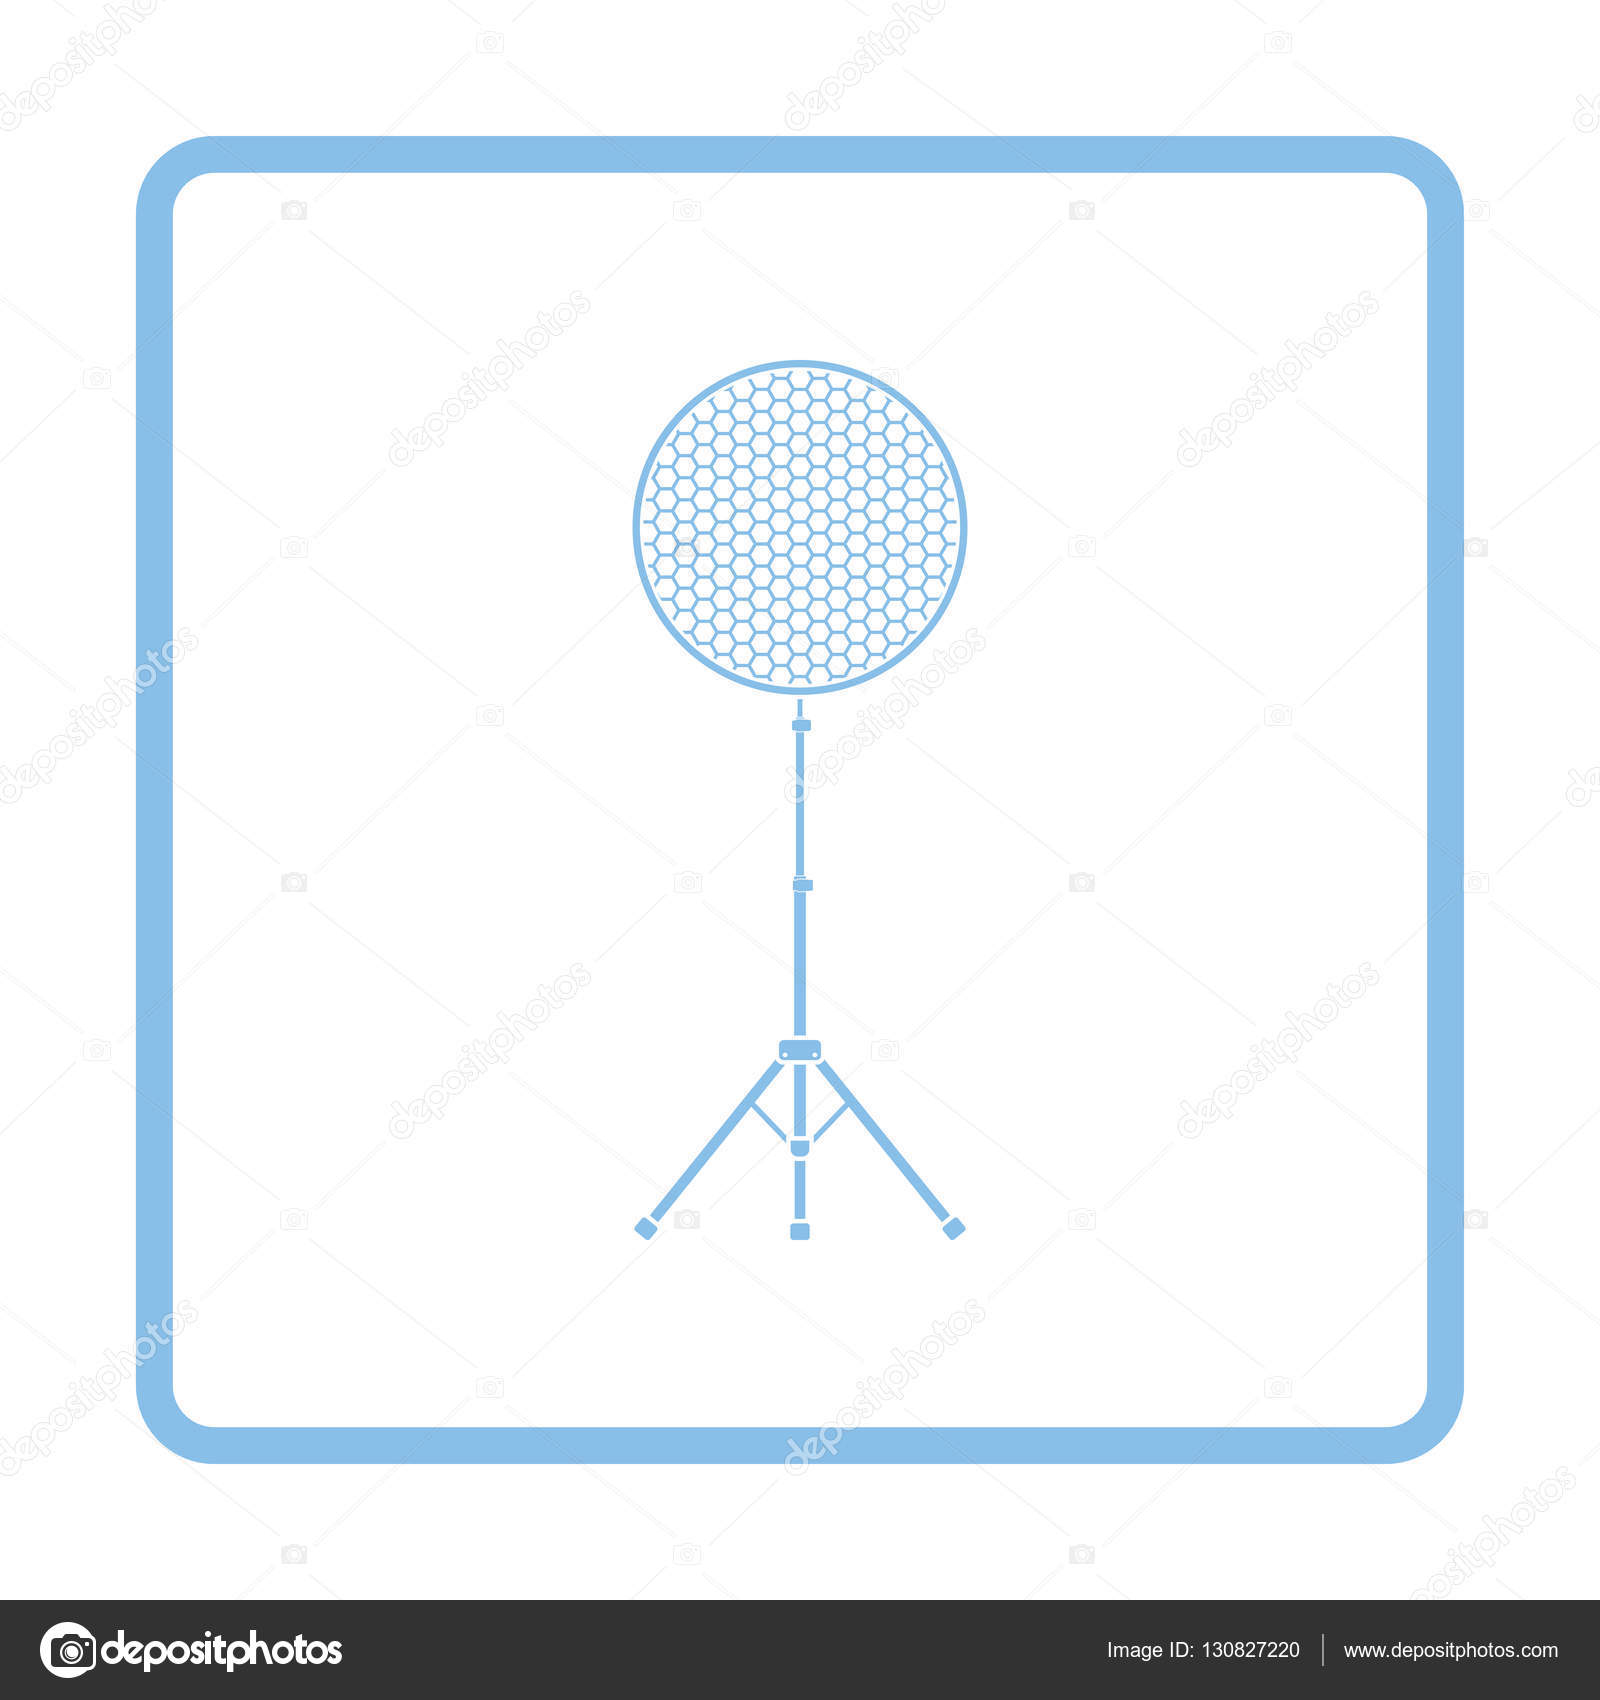 Icon Of Beauty Dish Flash Stock Vector Angelp 130827220 Lighting Diagram